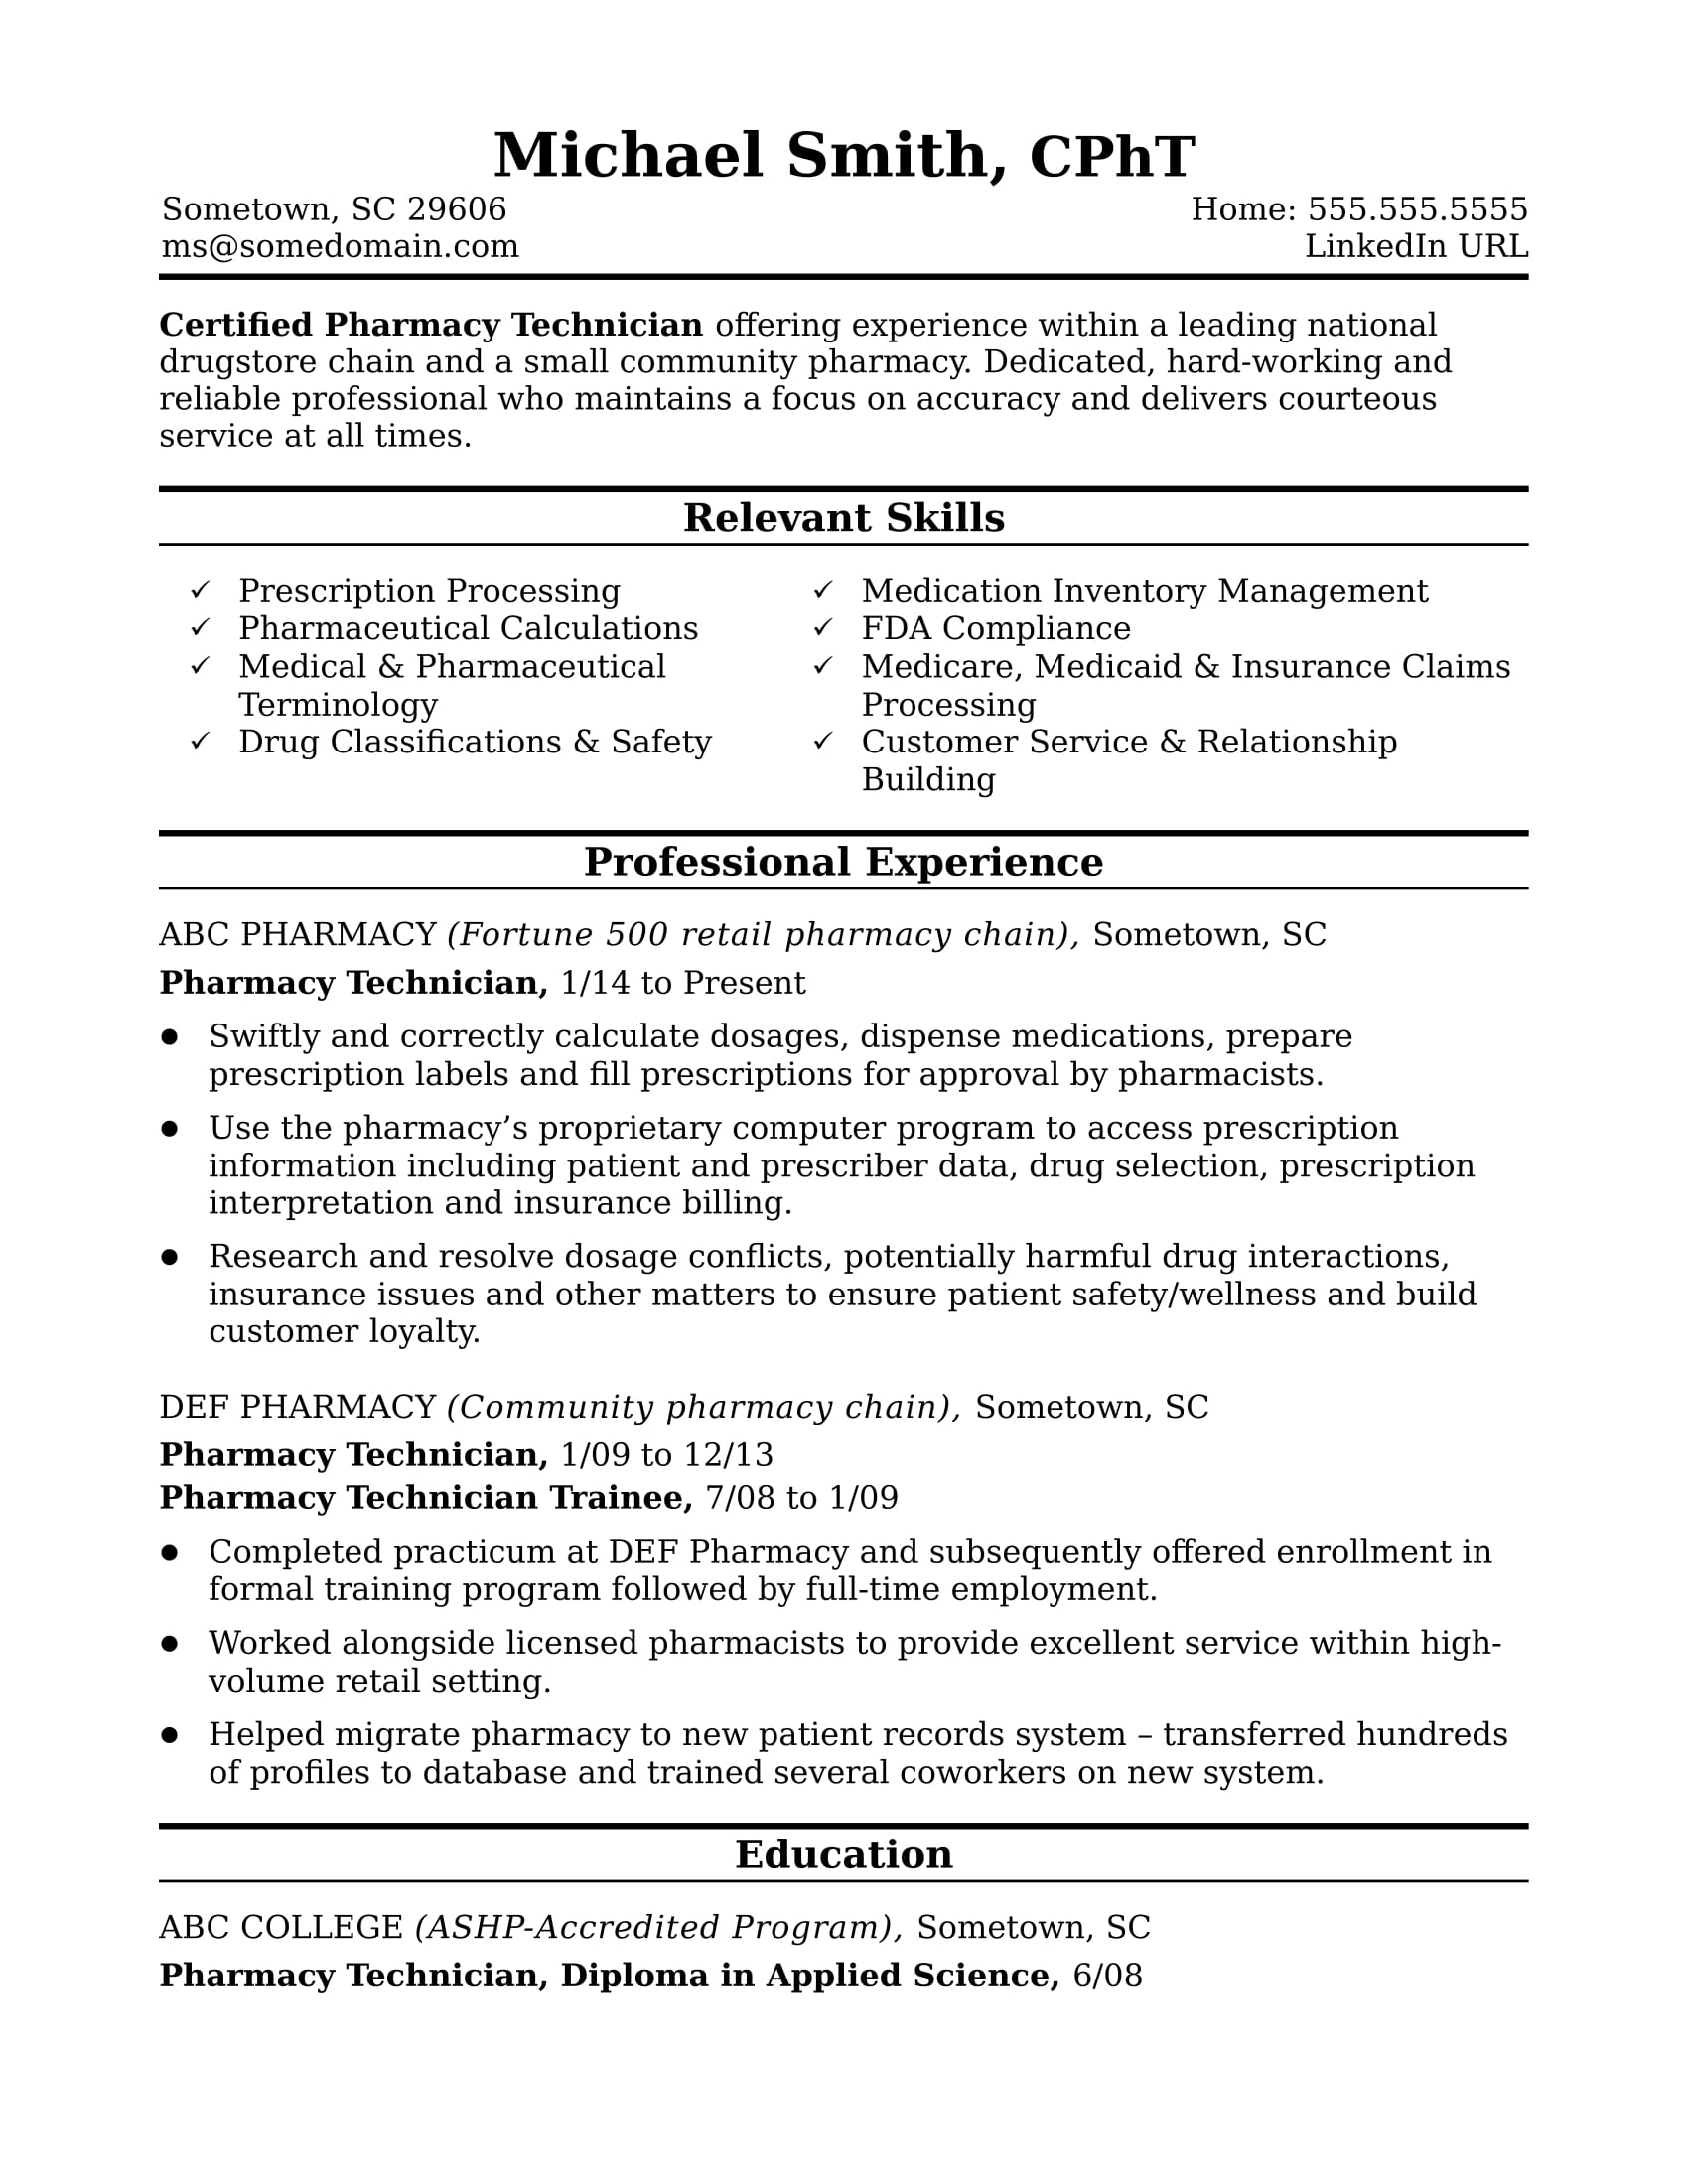 midlevel pharmacy technician resume sample monster pharmacist example templates microsoft Resume Pharmacist Resume Example